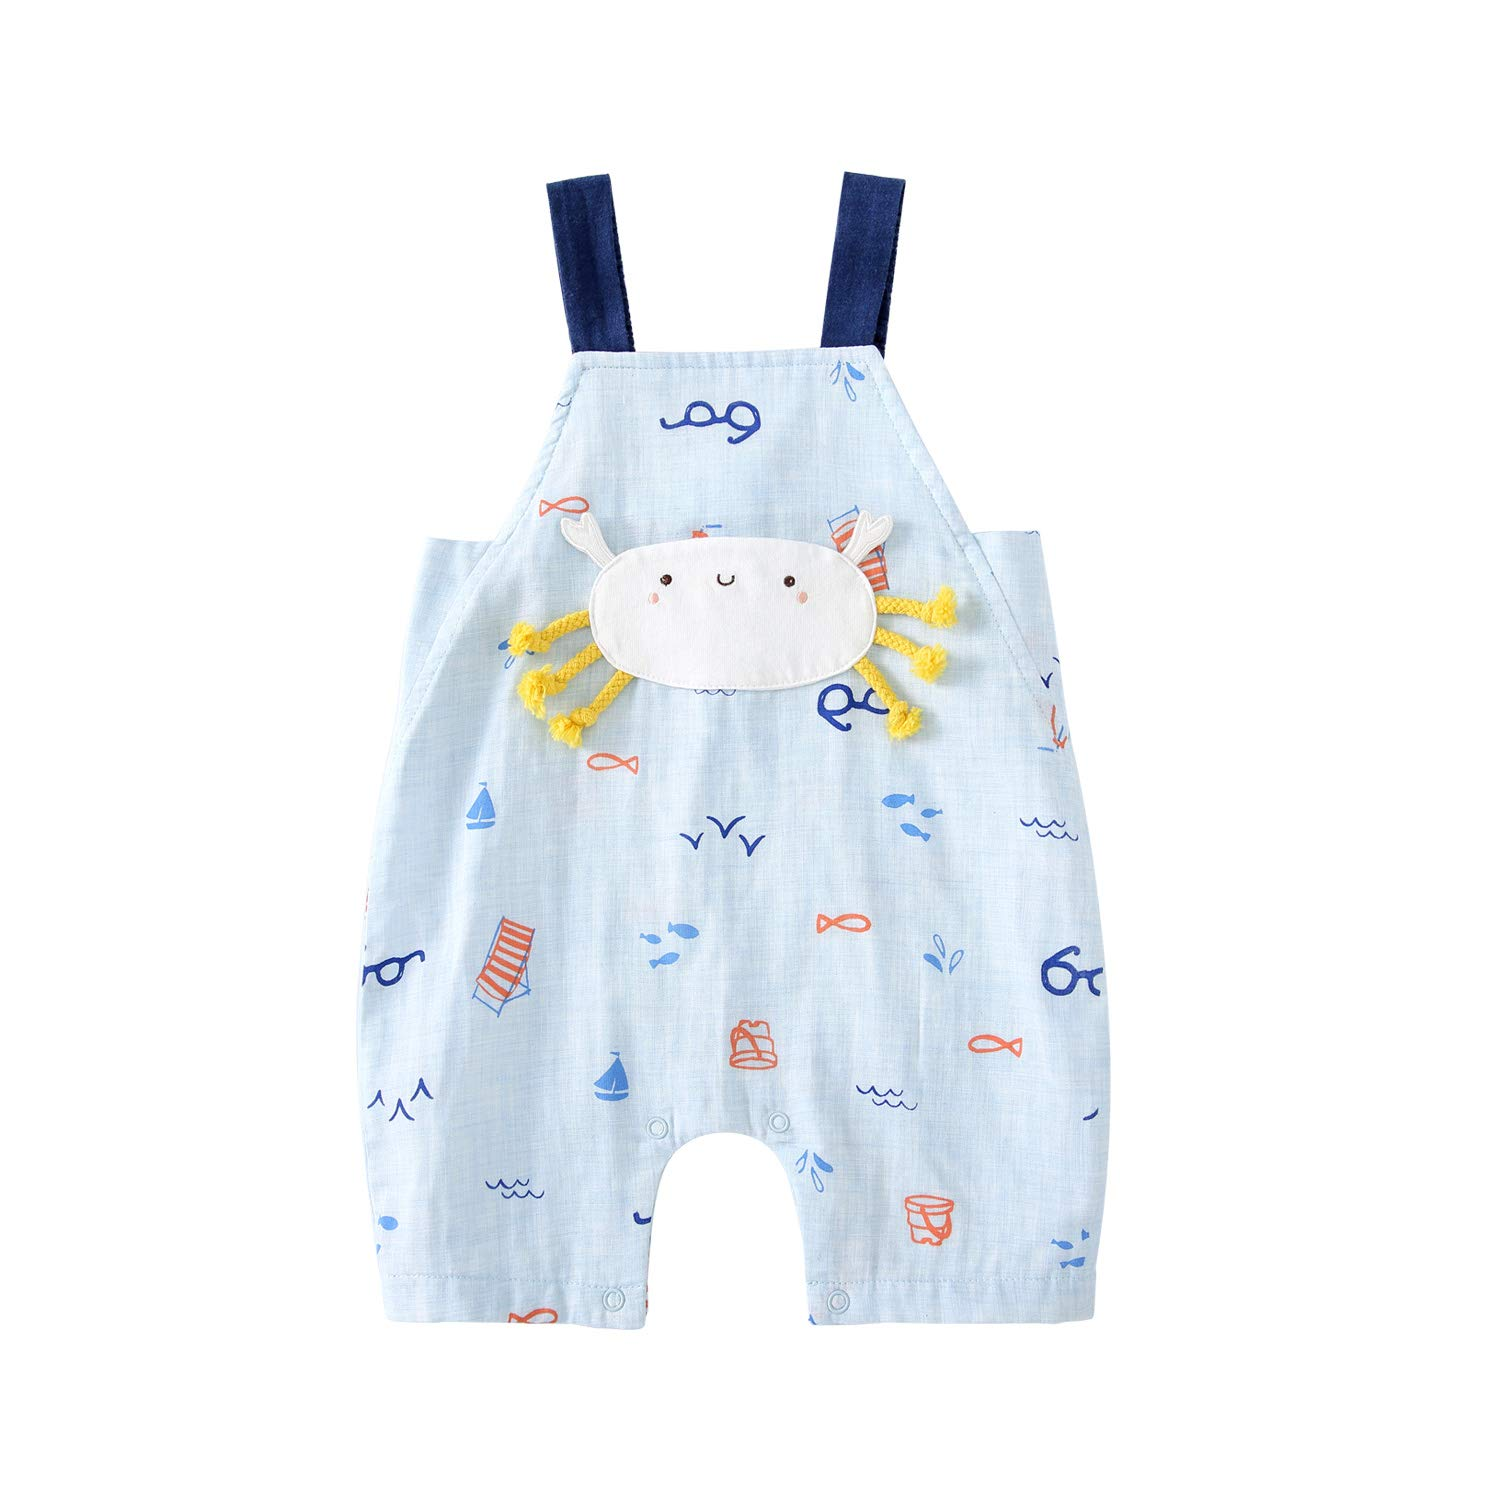 pureborn Baby Boy Girl Cartoon Overalls Summer Cotton Jumpsuits Romper Pants Outfits